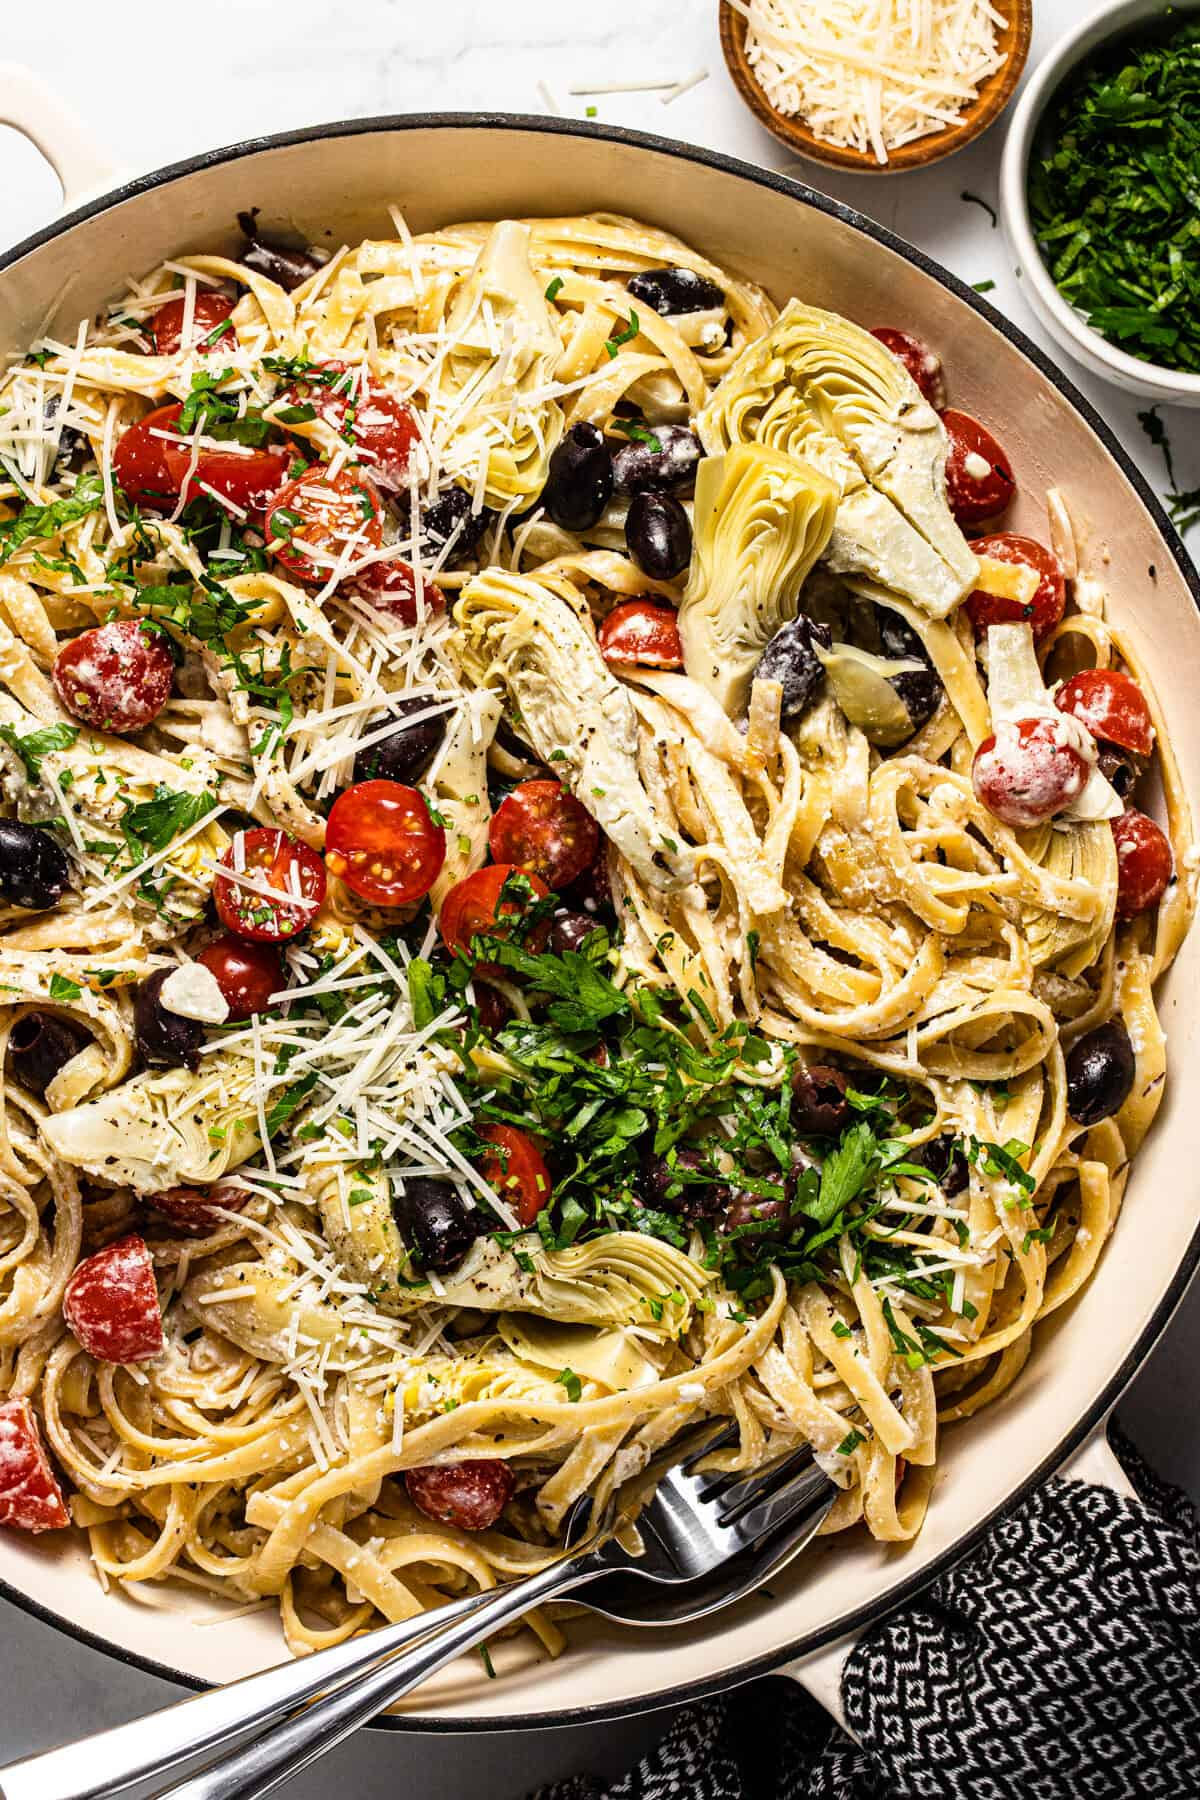 Overhead shot of a large pan filled with Greek pasta